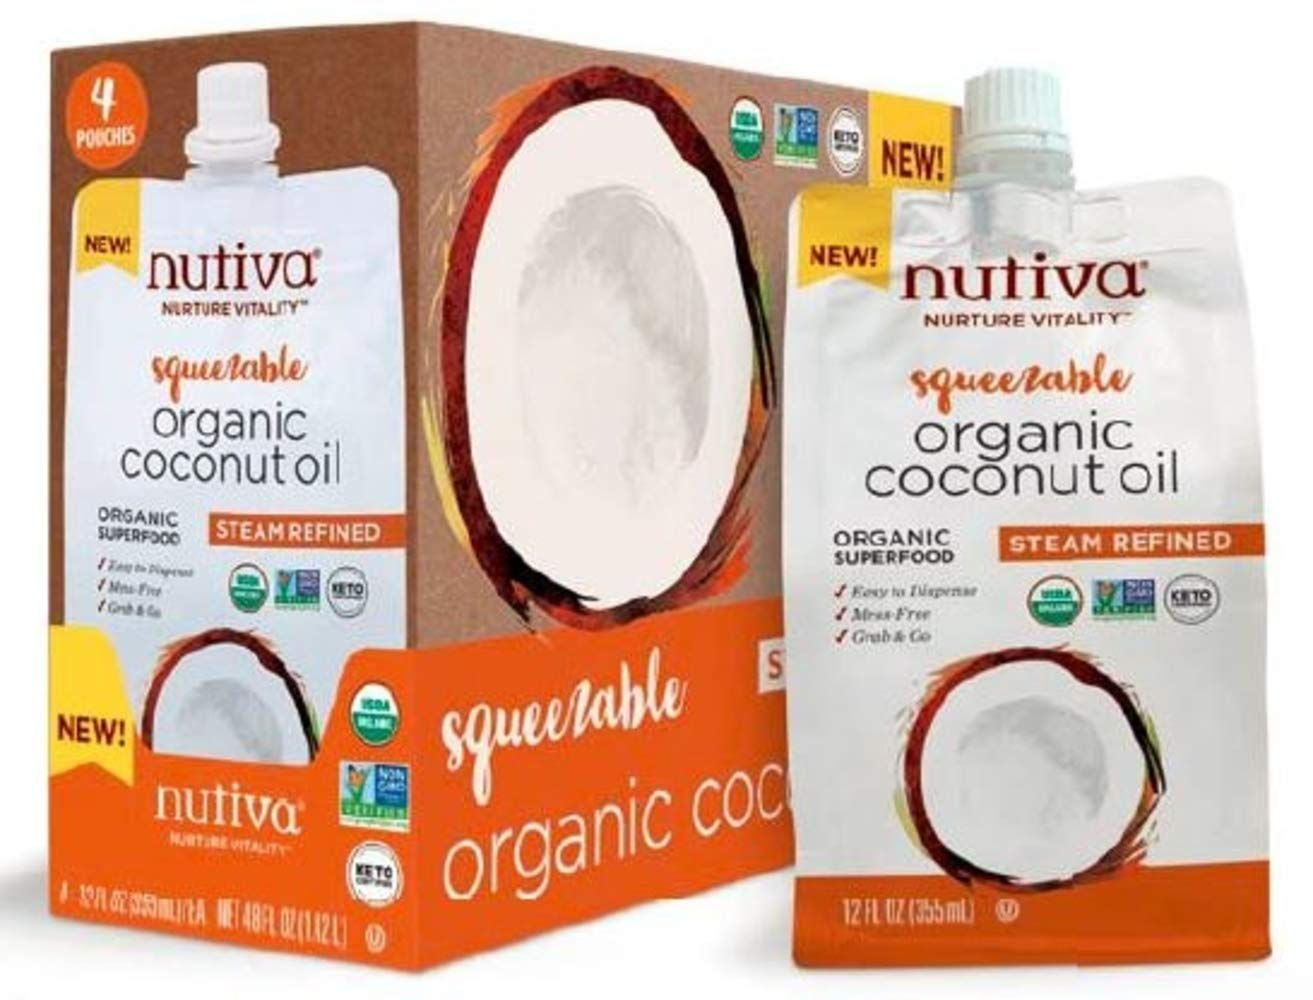 Nutiva Organic, Neutral Tasting, Steam Refined Coconut Oil, Squeezable 12-ounce Pouch (Pack of 4) by Nutiva